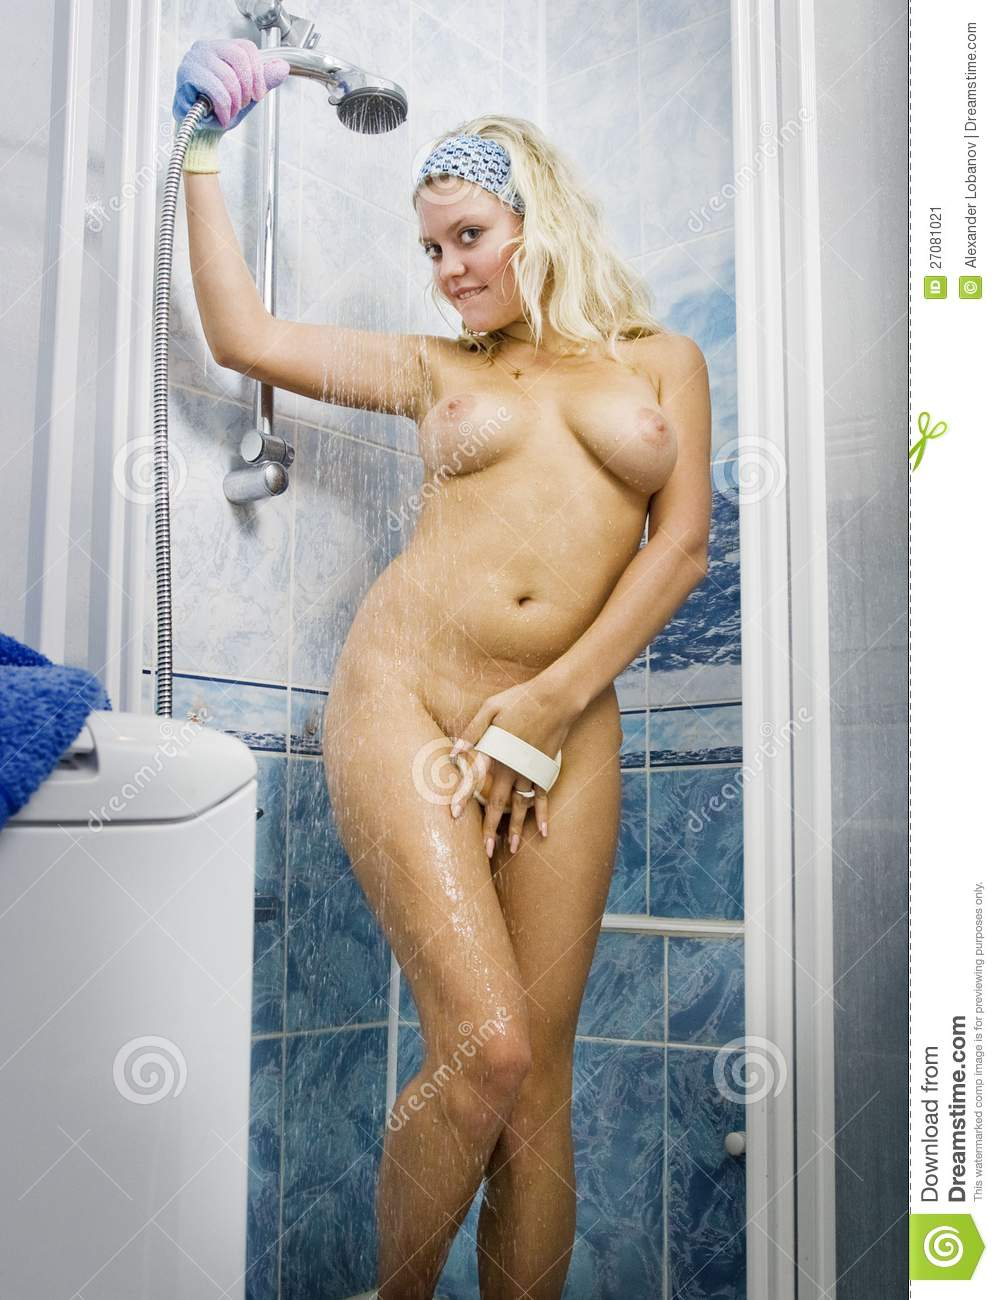 Chubby girls naked in bathroom